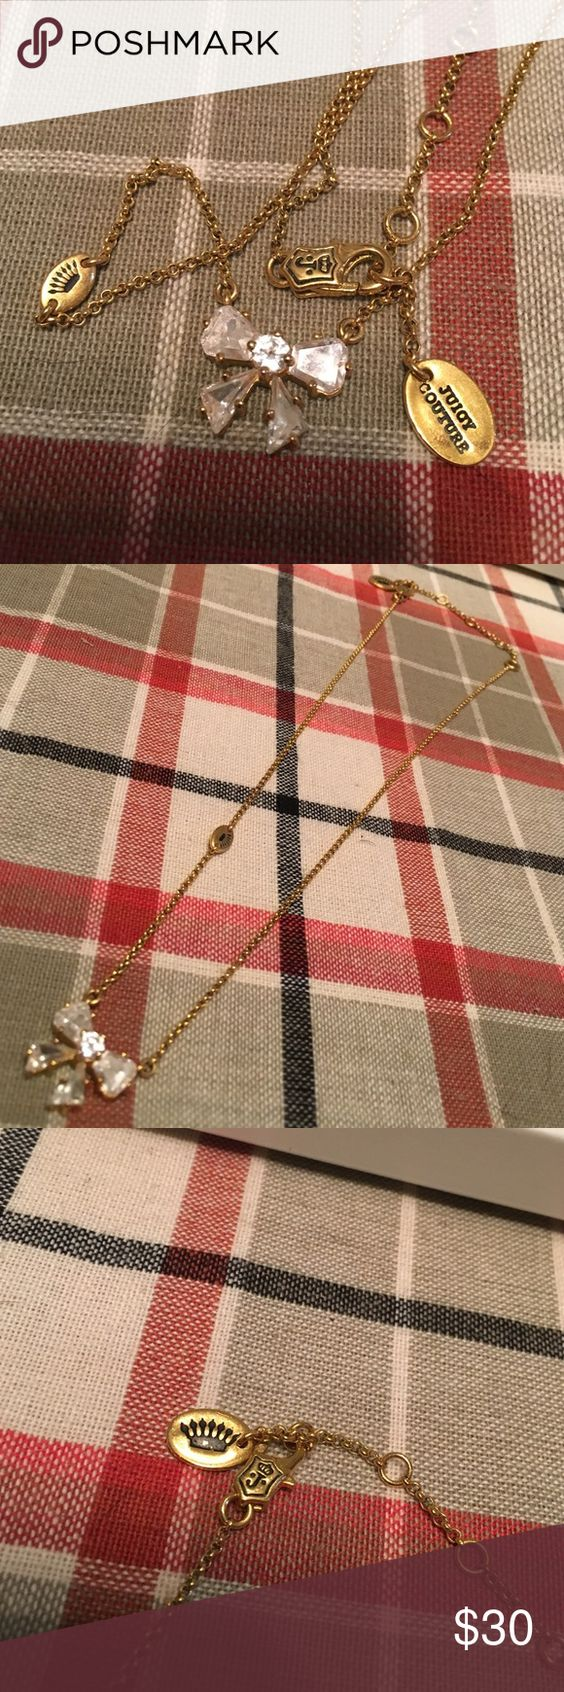 Juicy couture bow necklace with sparkle Juicy couture necklace. Great condition. Juicy Couture Jewelry Necklaces